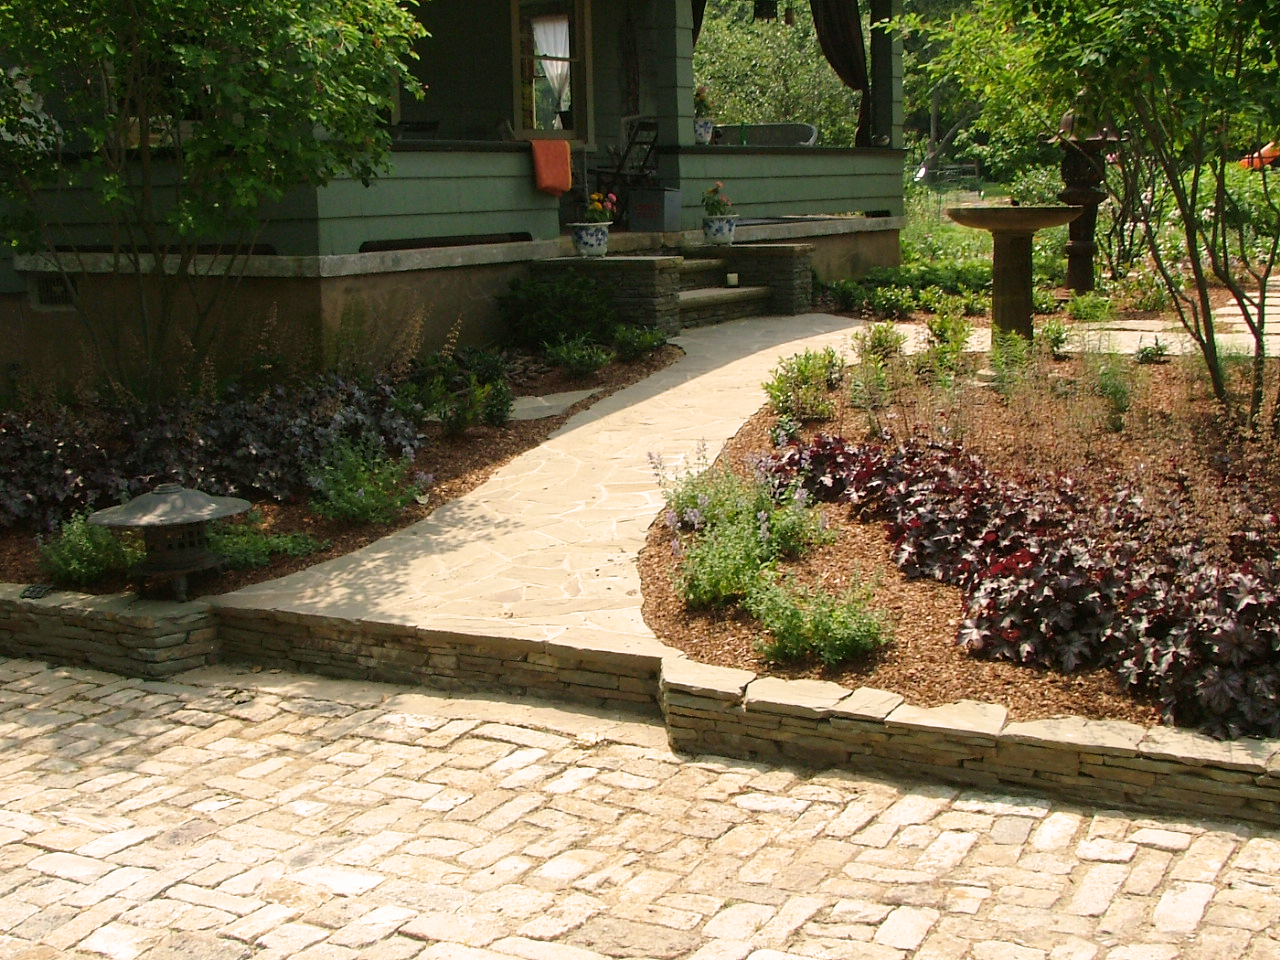 Natural stone path to front door